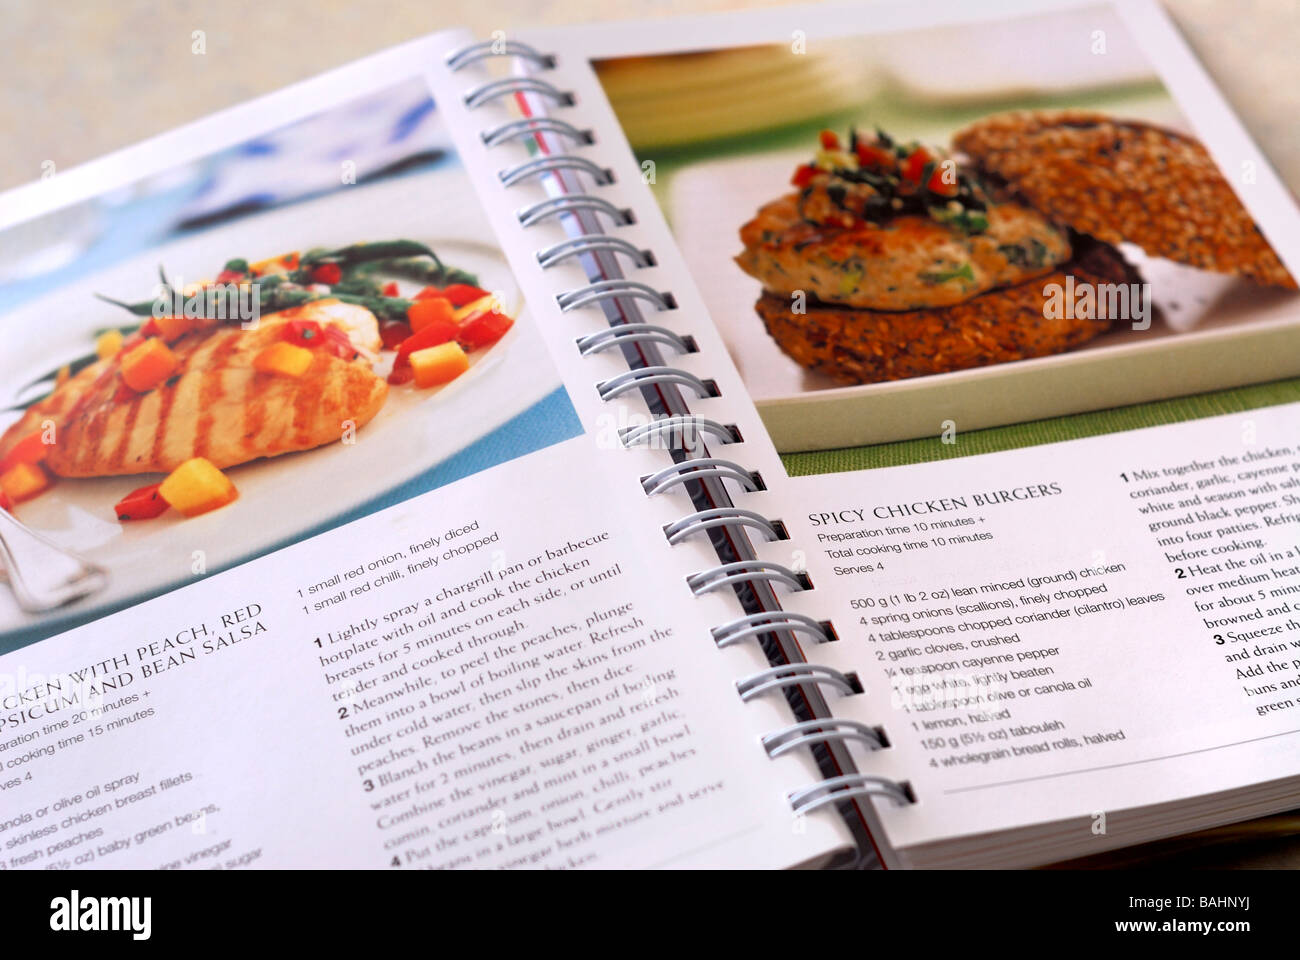 Open Cookery Book - Stock Image